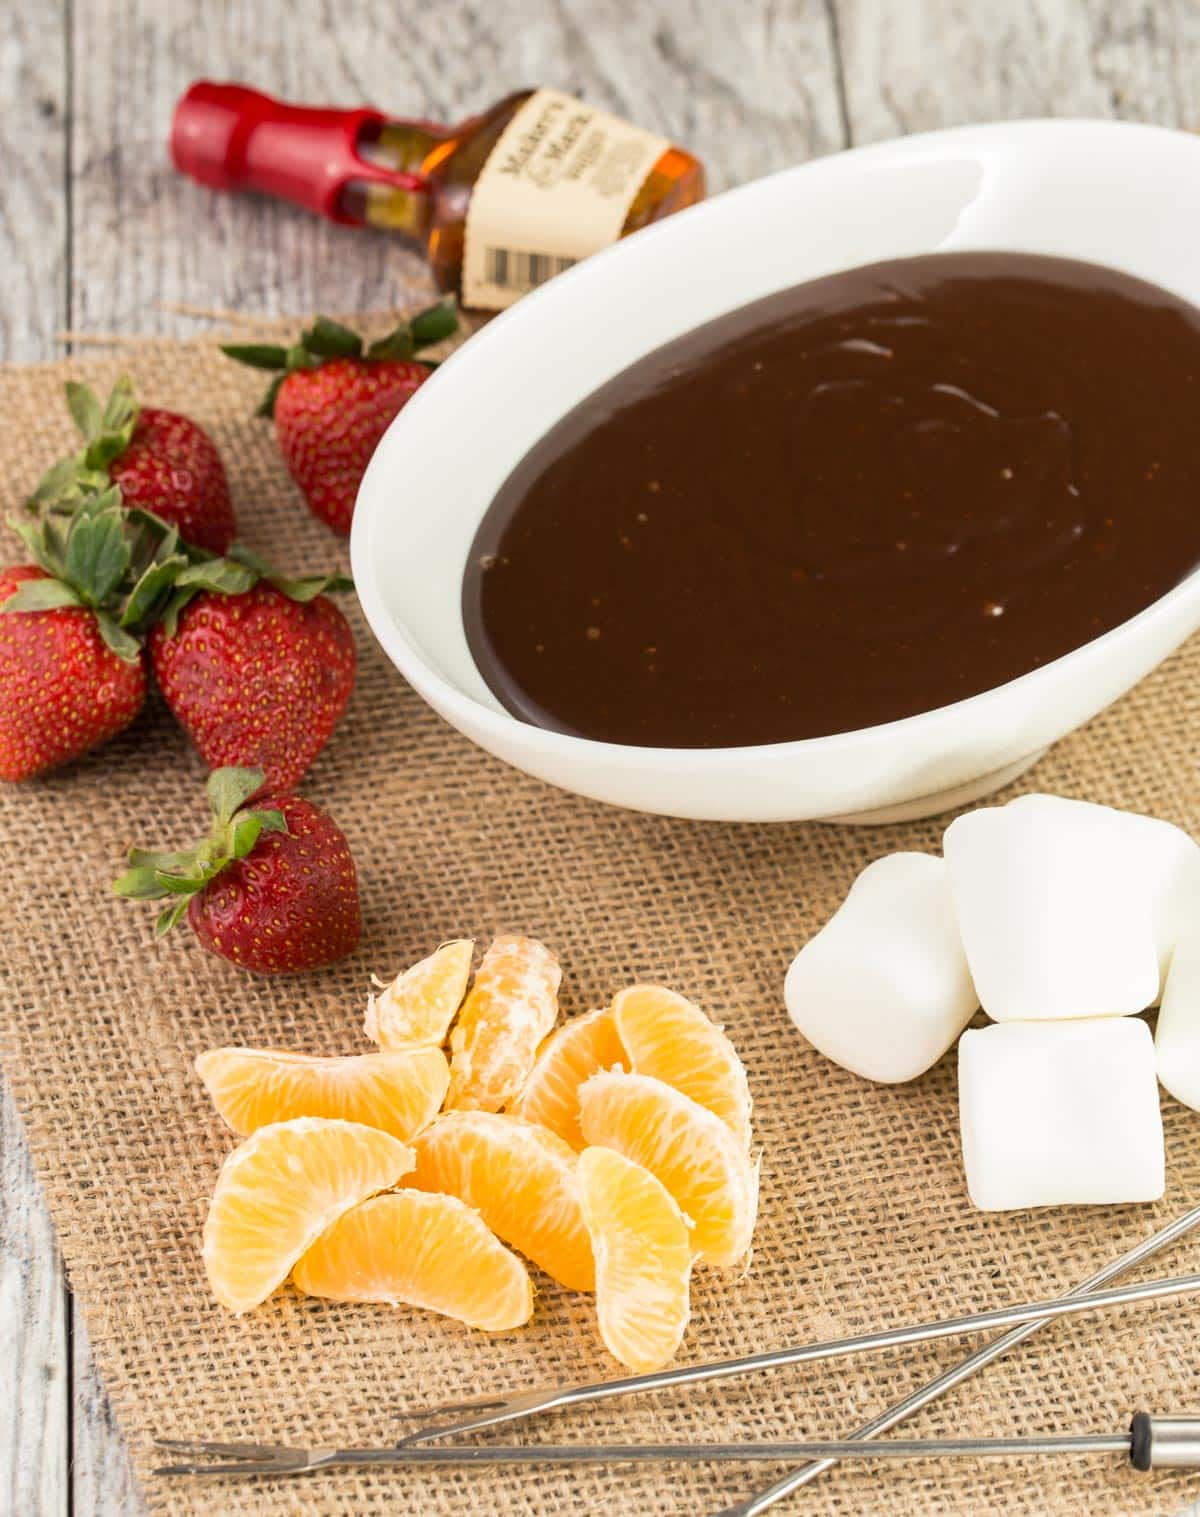 ... Cooker Chocolate Fondue ensures silky smooth chocolate every time